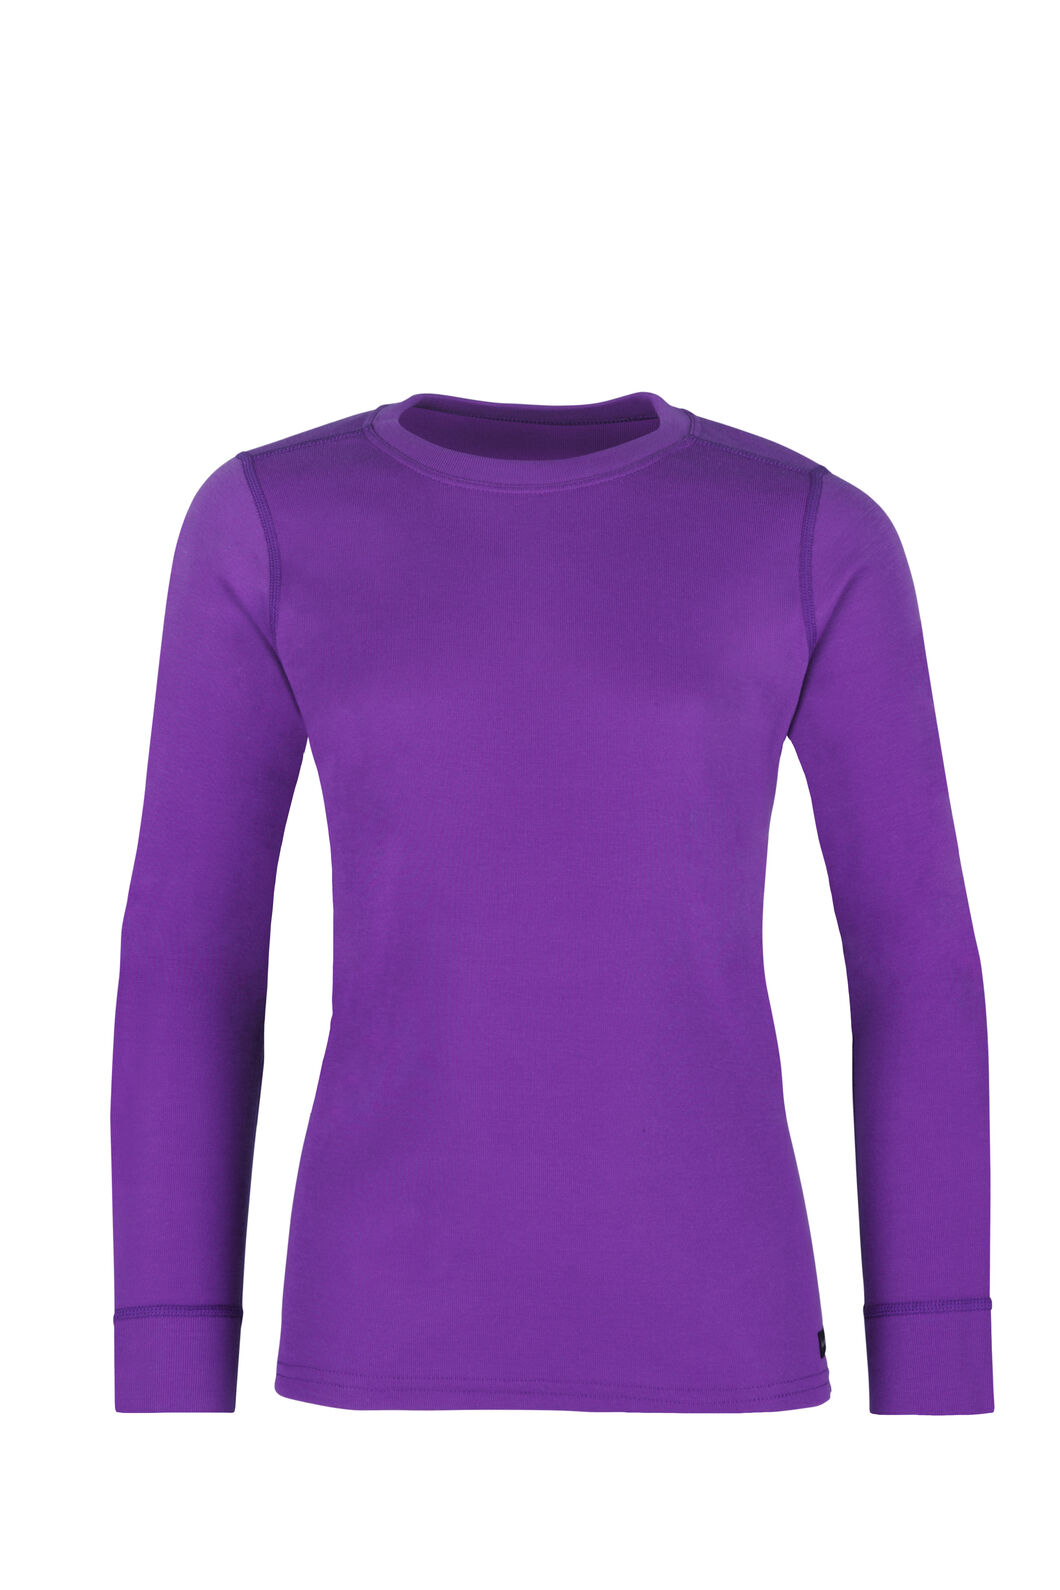 Macpac Geothermal Long Sleeve Top - Kids', Dahlia, hi-res